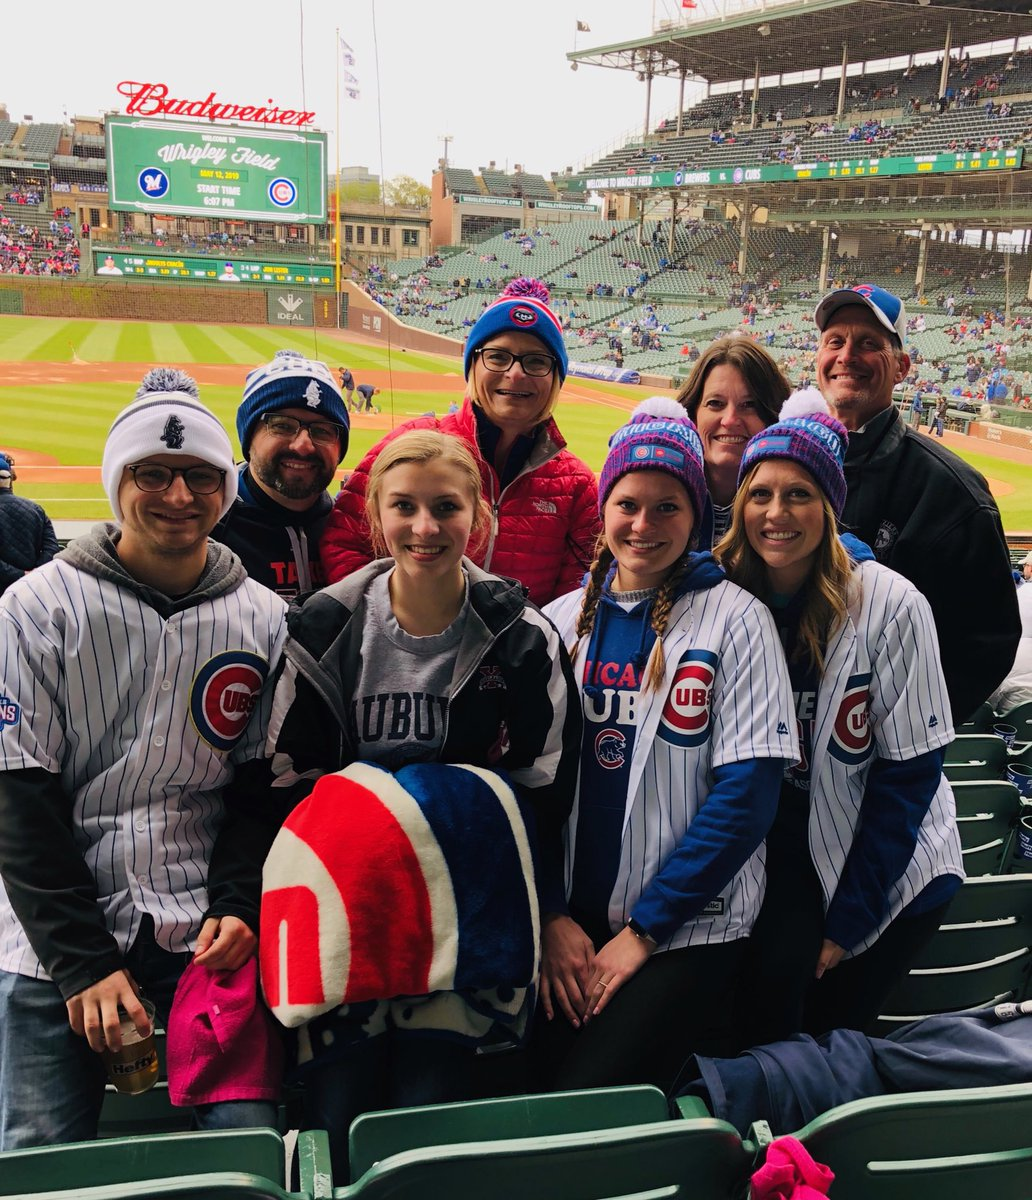 ⁦@Cubs⁩ spending our Mother's Day at Wrigley!! https://t.co/N5MAD7wT7L